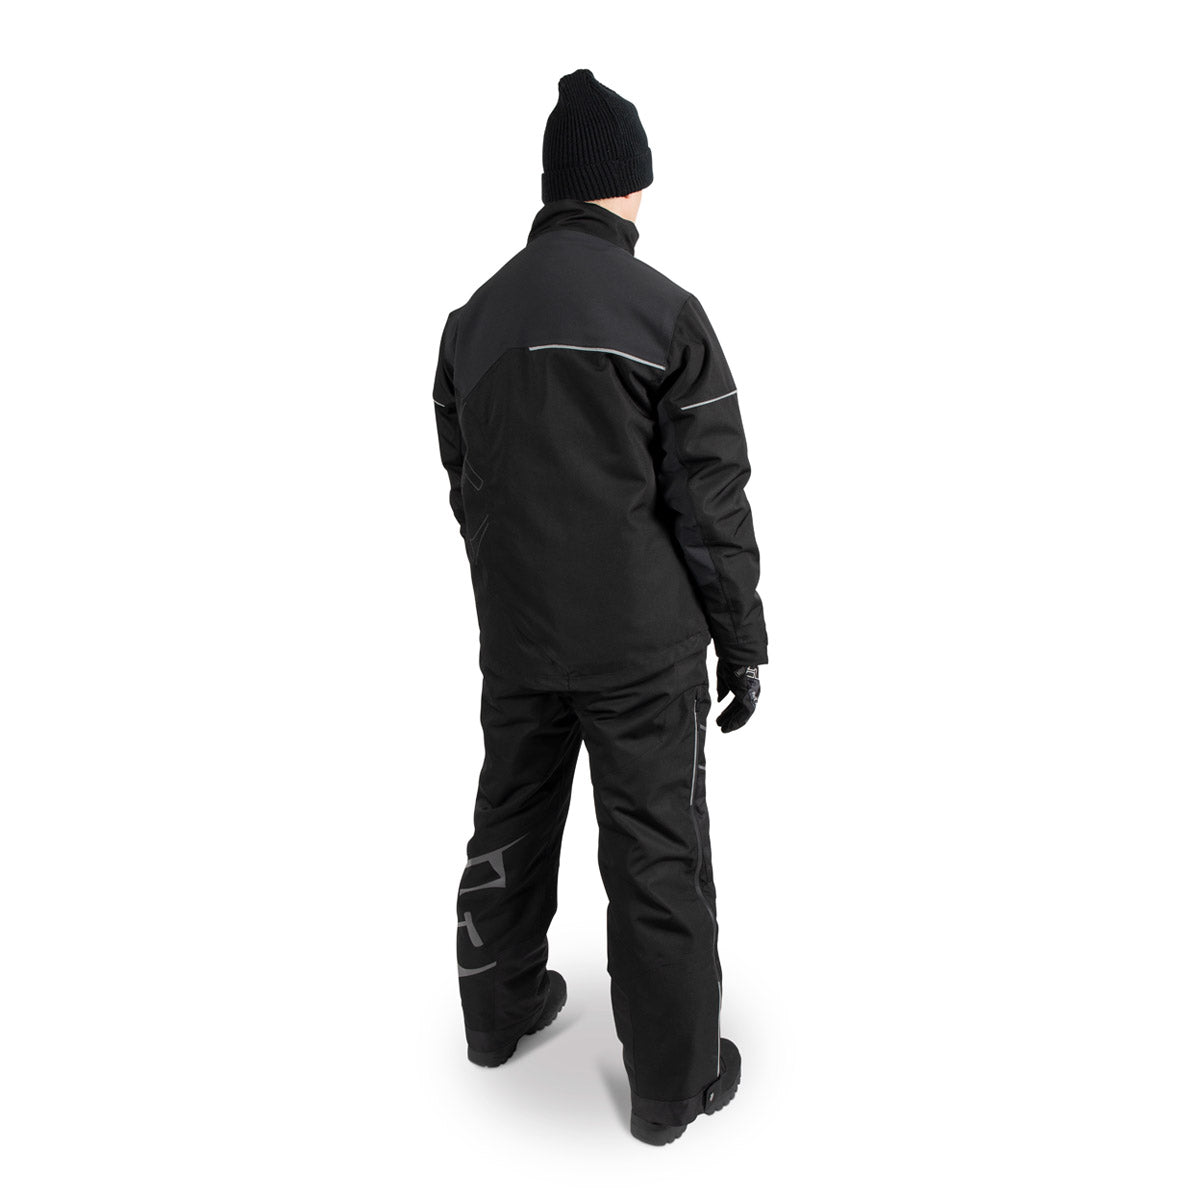 Range Insulated Jacket